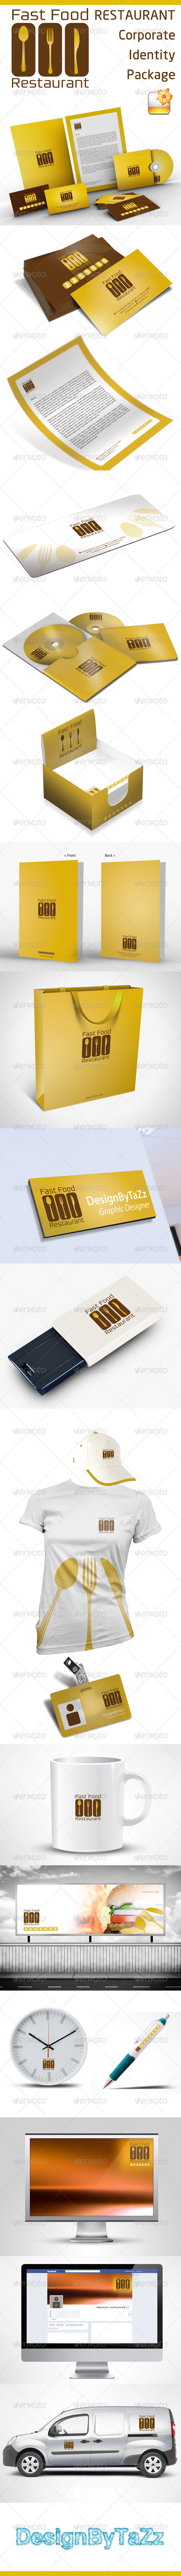 Fast Food & Restoran Corporate Identity Package